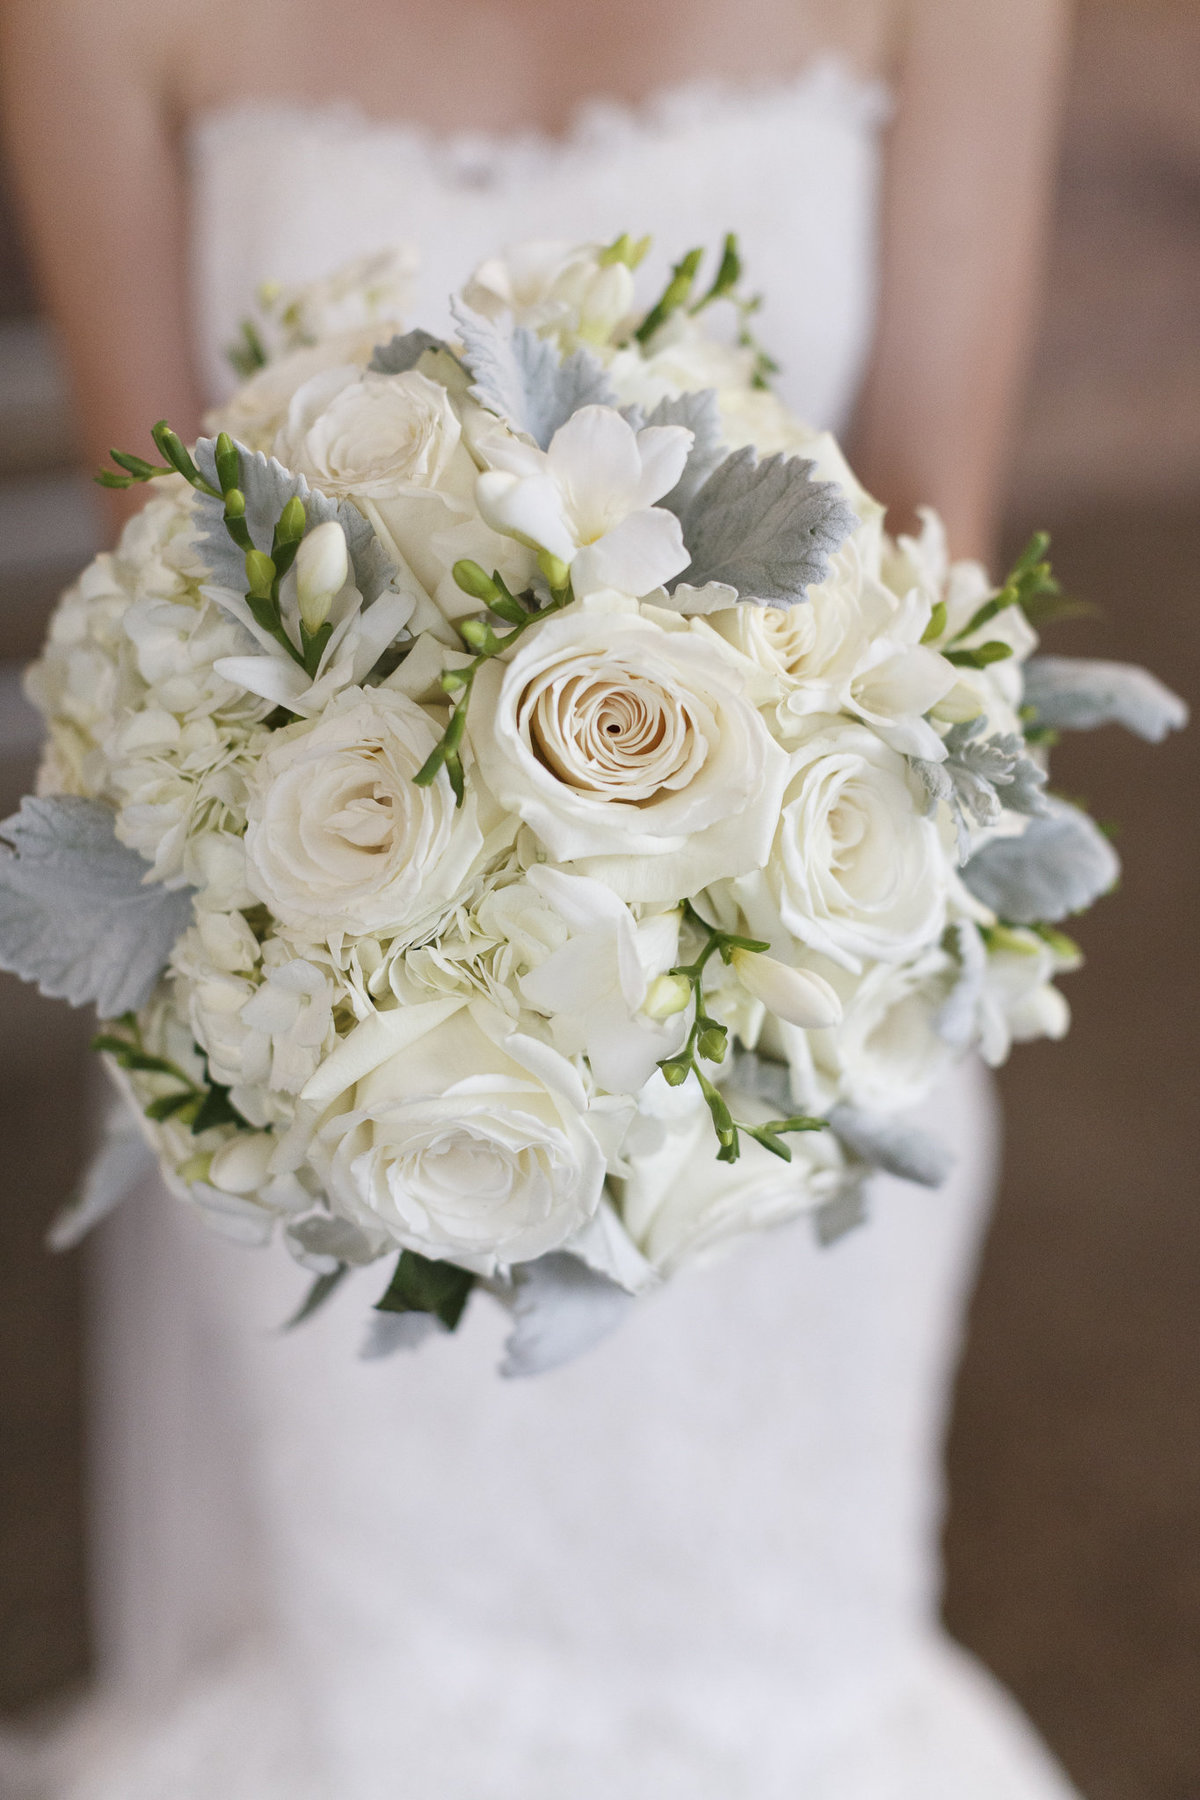 White Rose Bridal Bouquet in Indianapolis